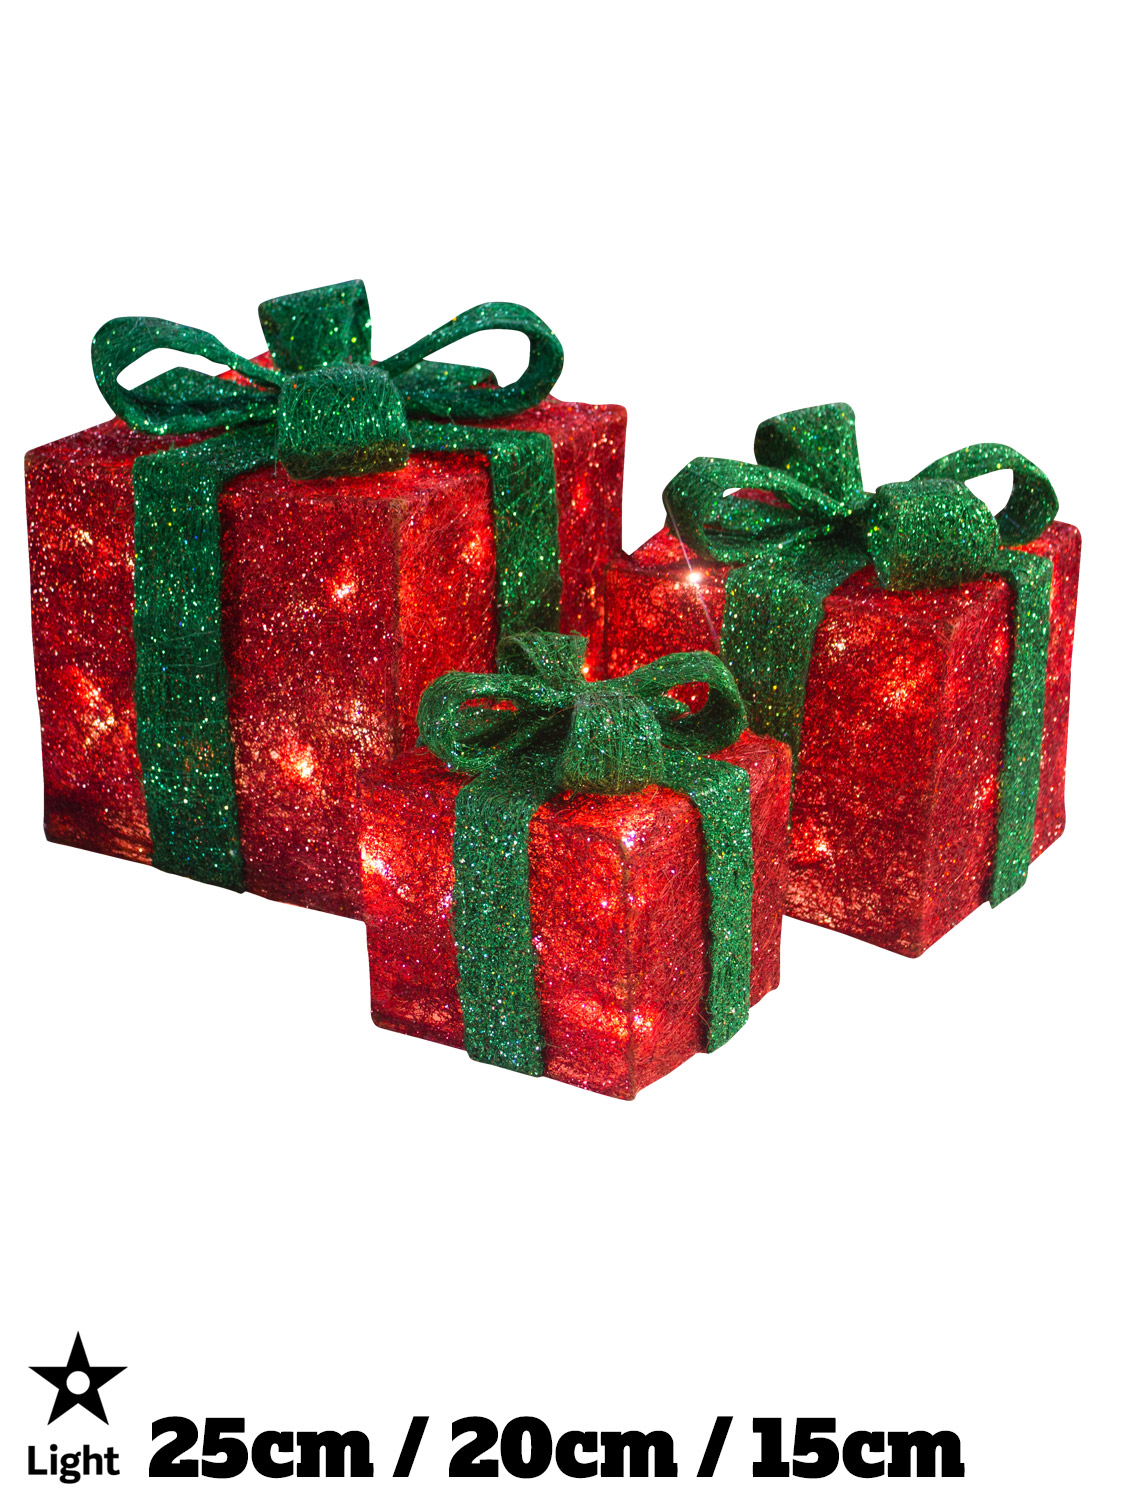 light up gift boxes presents set of 3